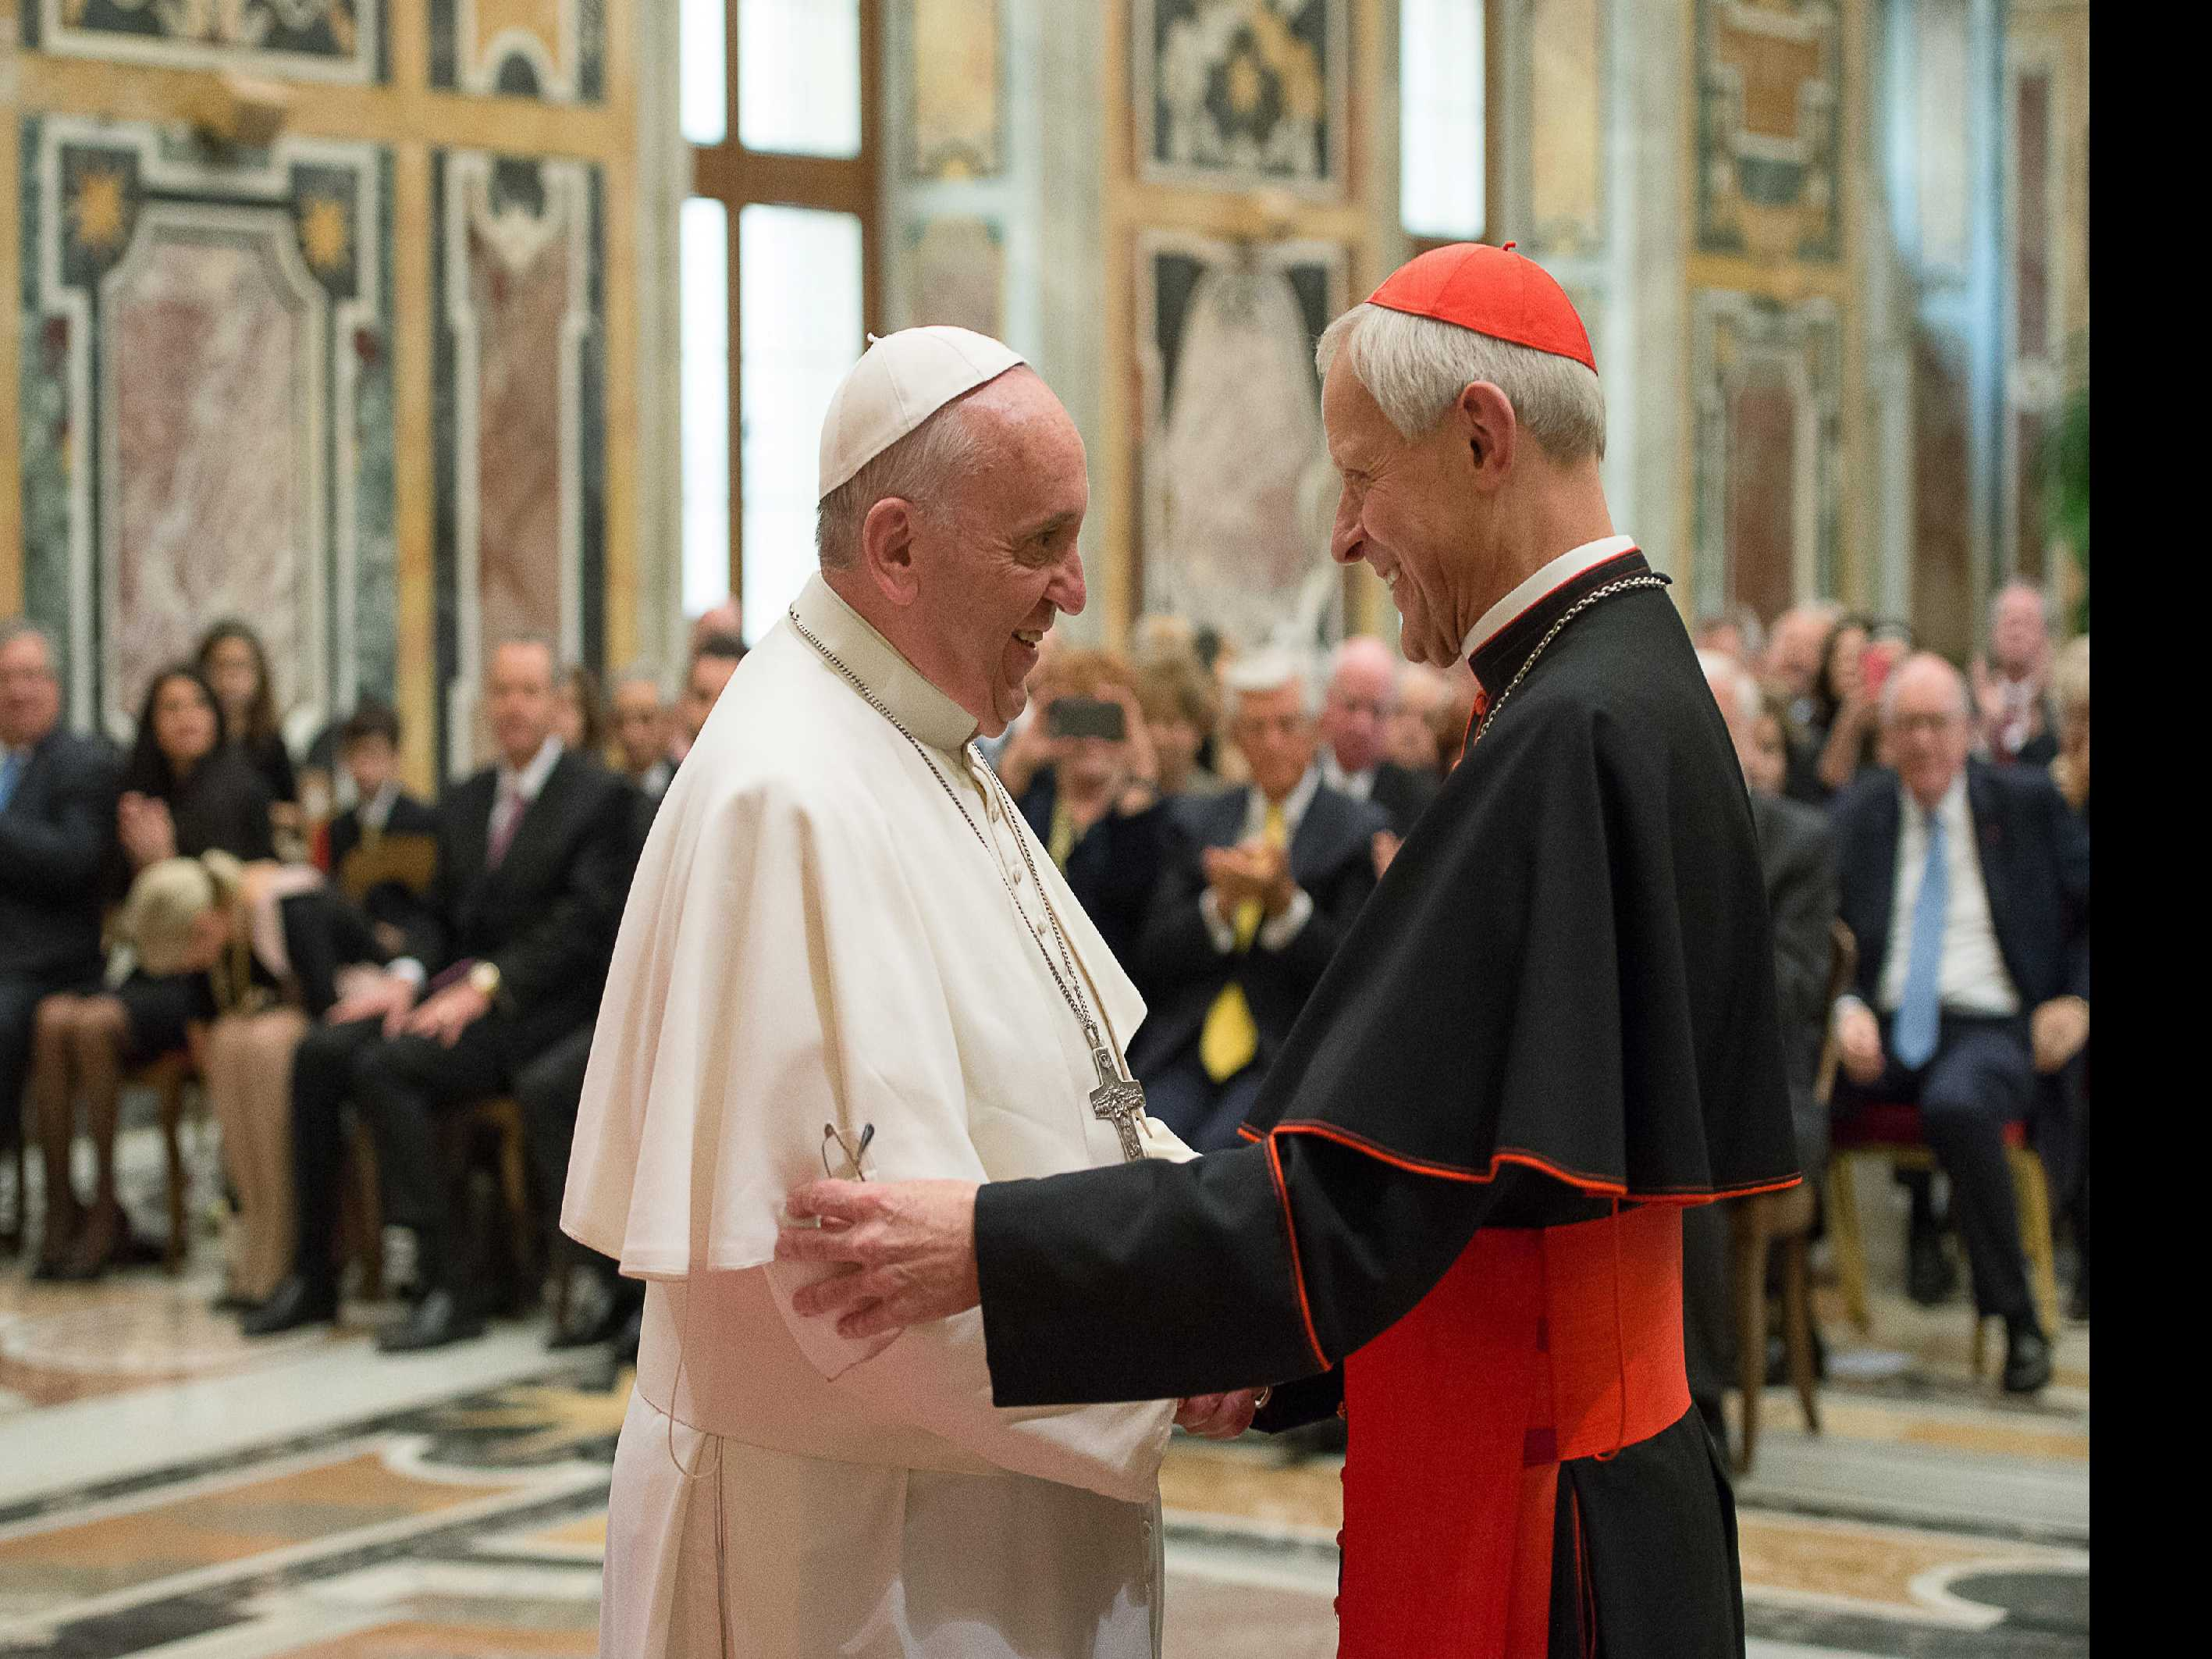 Bishops Request Vatican Investigation as Abuse Crisis Grows